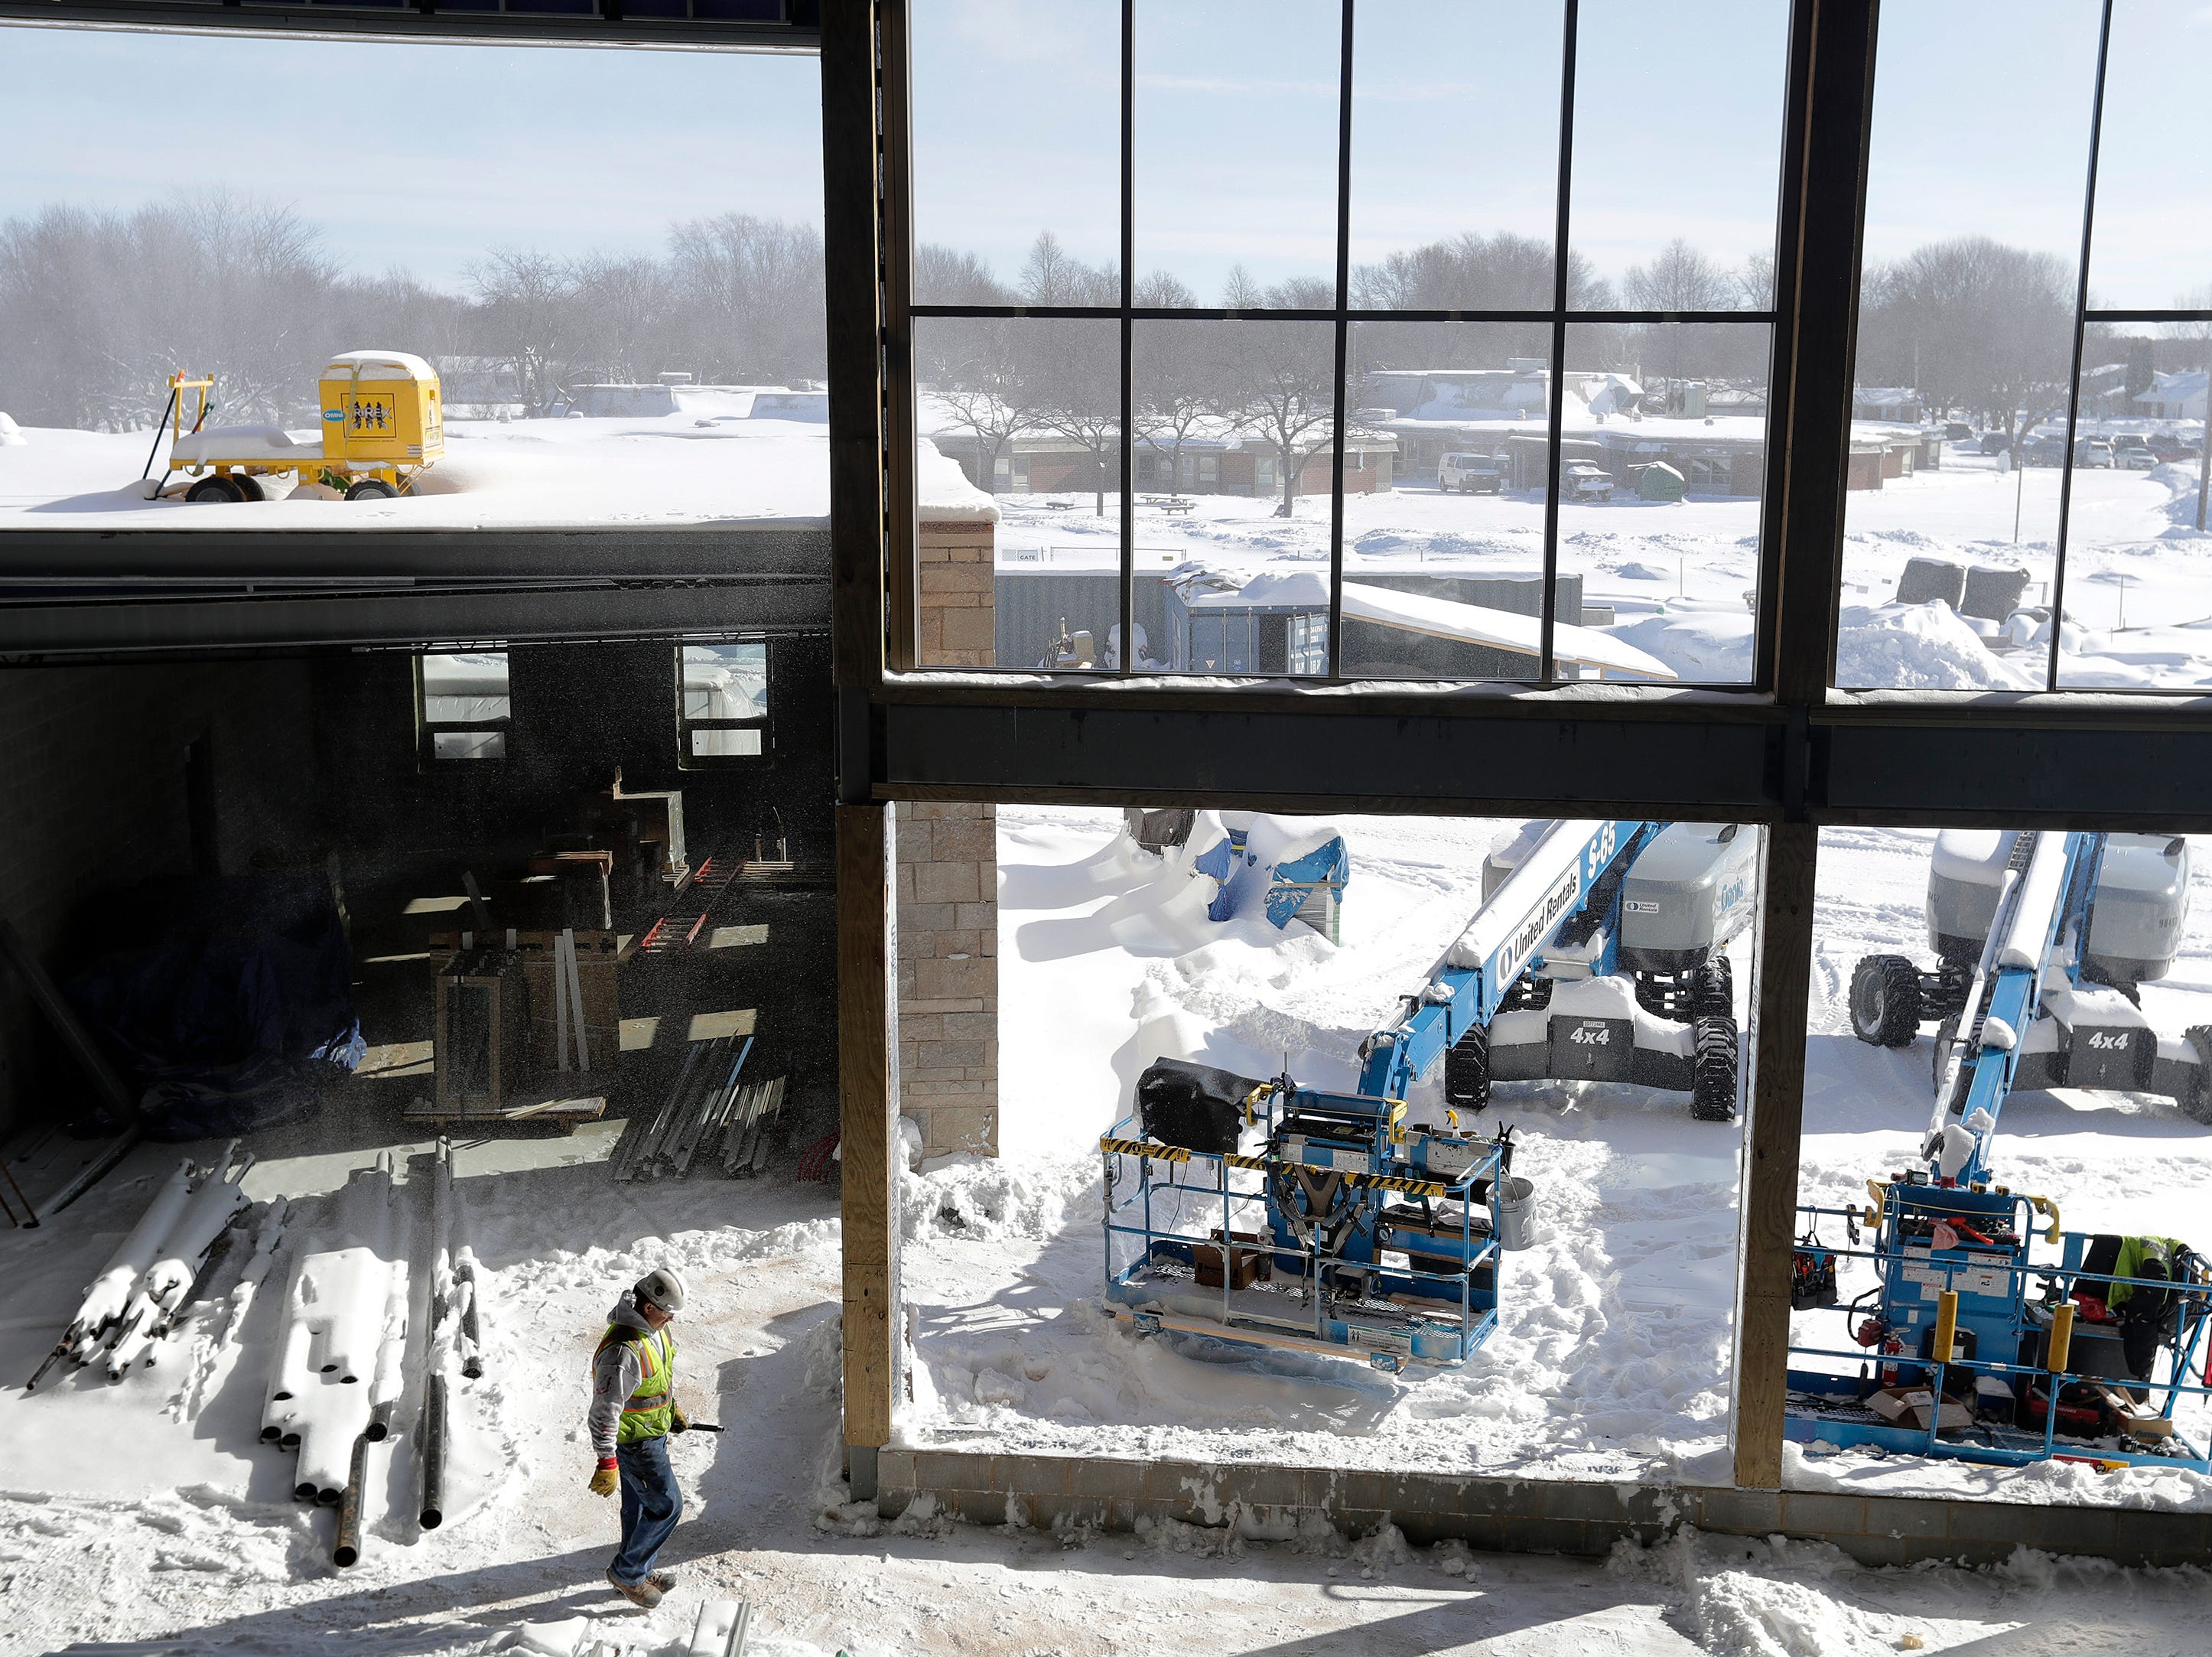 A construction worker walks through the  cafeteria area of the new Baird Elementary School  in Green Bay on Wednesday. The existing Baird Elementary is visible in the background. The new school is scheduled to open in fall.